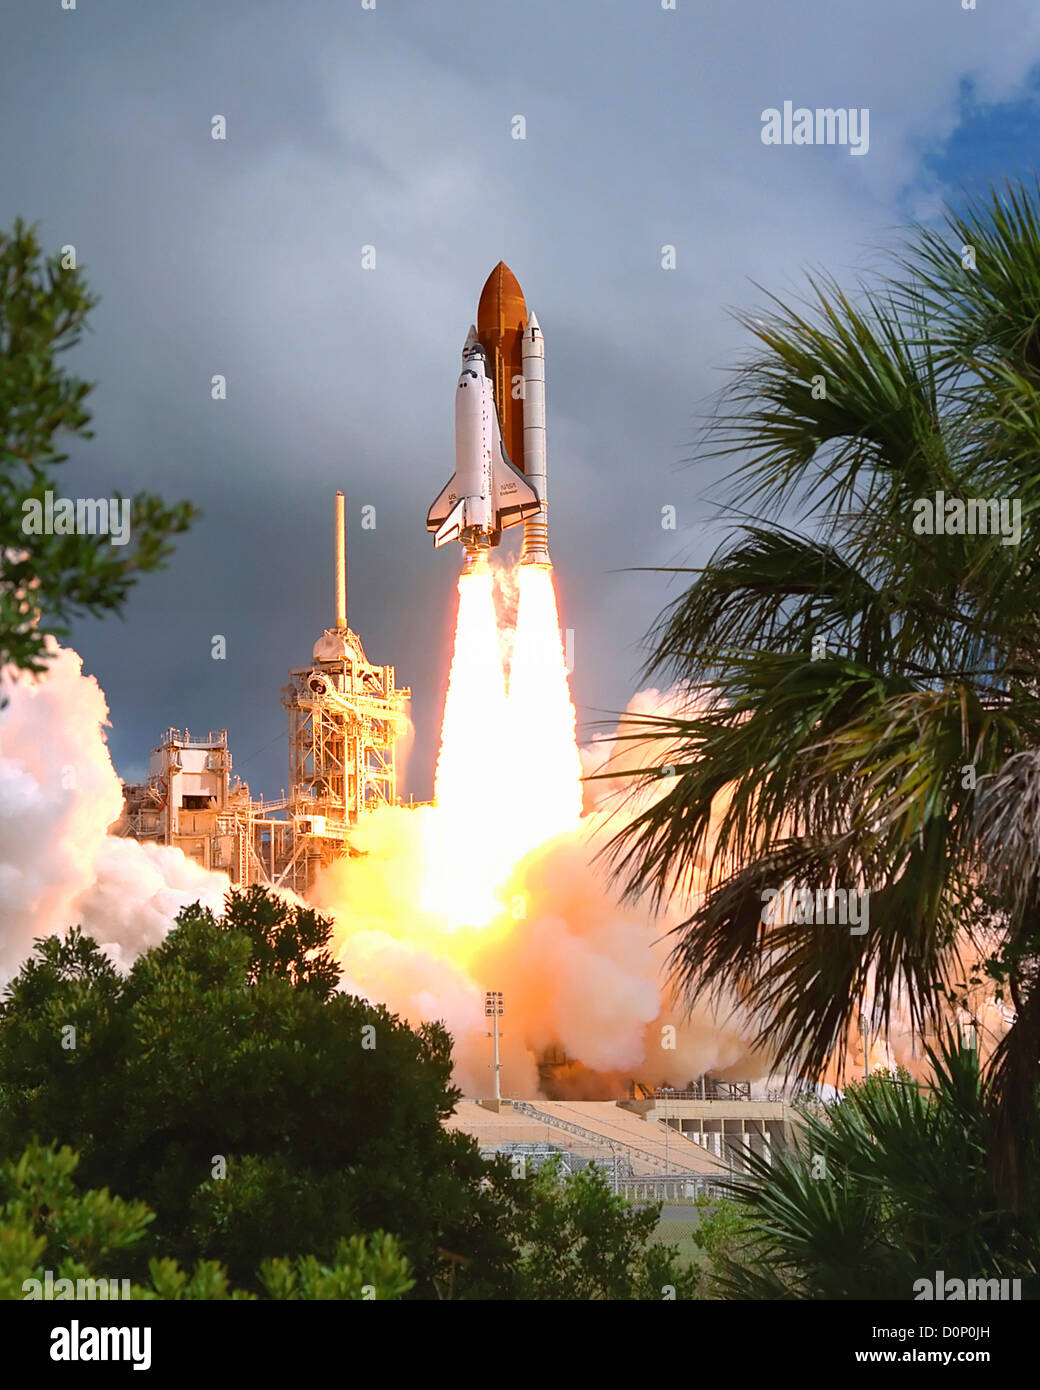 Launch of Space Shuttle Endeavour on STS-57 - Stock Image